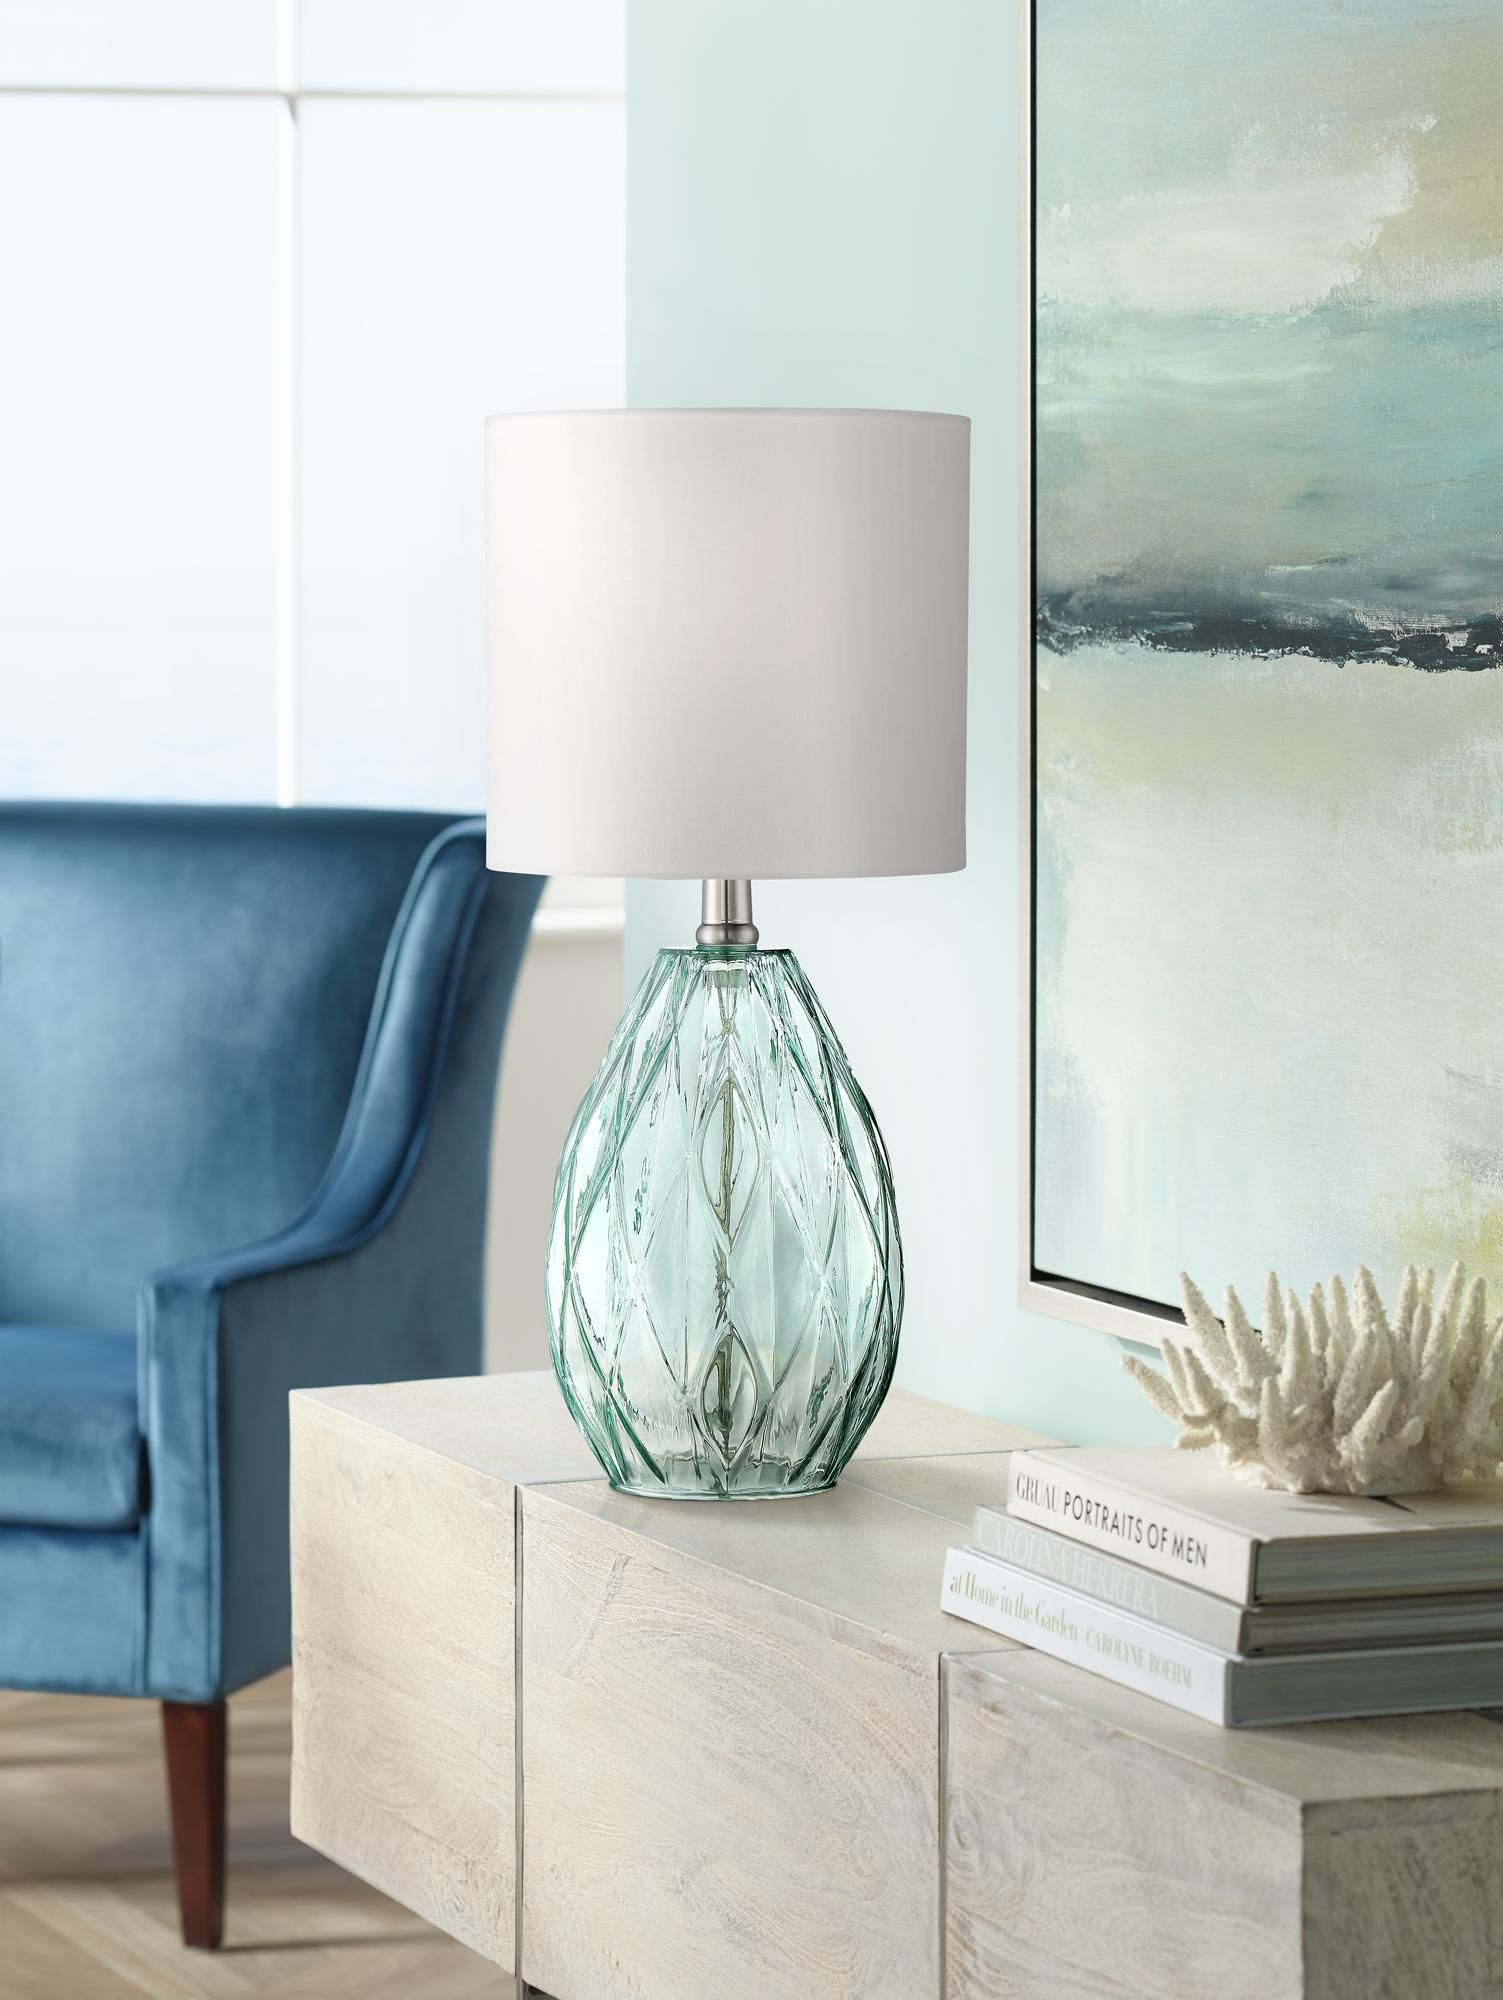 rita blue green glass accent table lamp lamps plus narrow nest tables lewis wood patio side mosaic kitchen modern furniture design ese pottery barn black coffee pin legs half moon